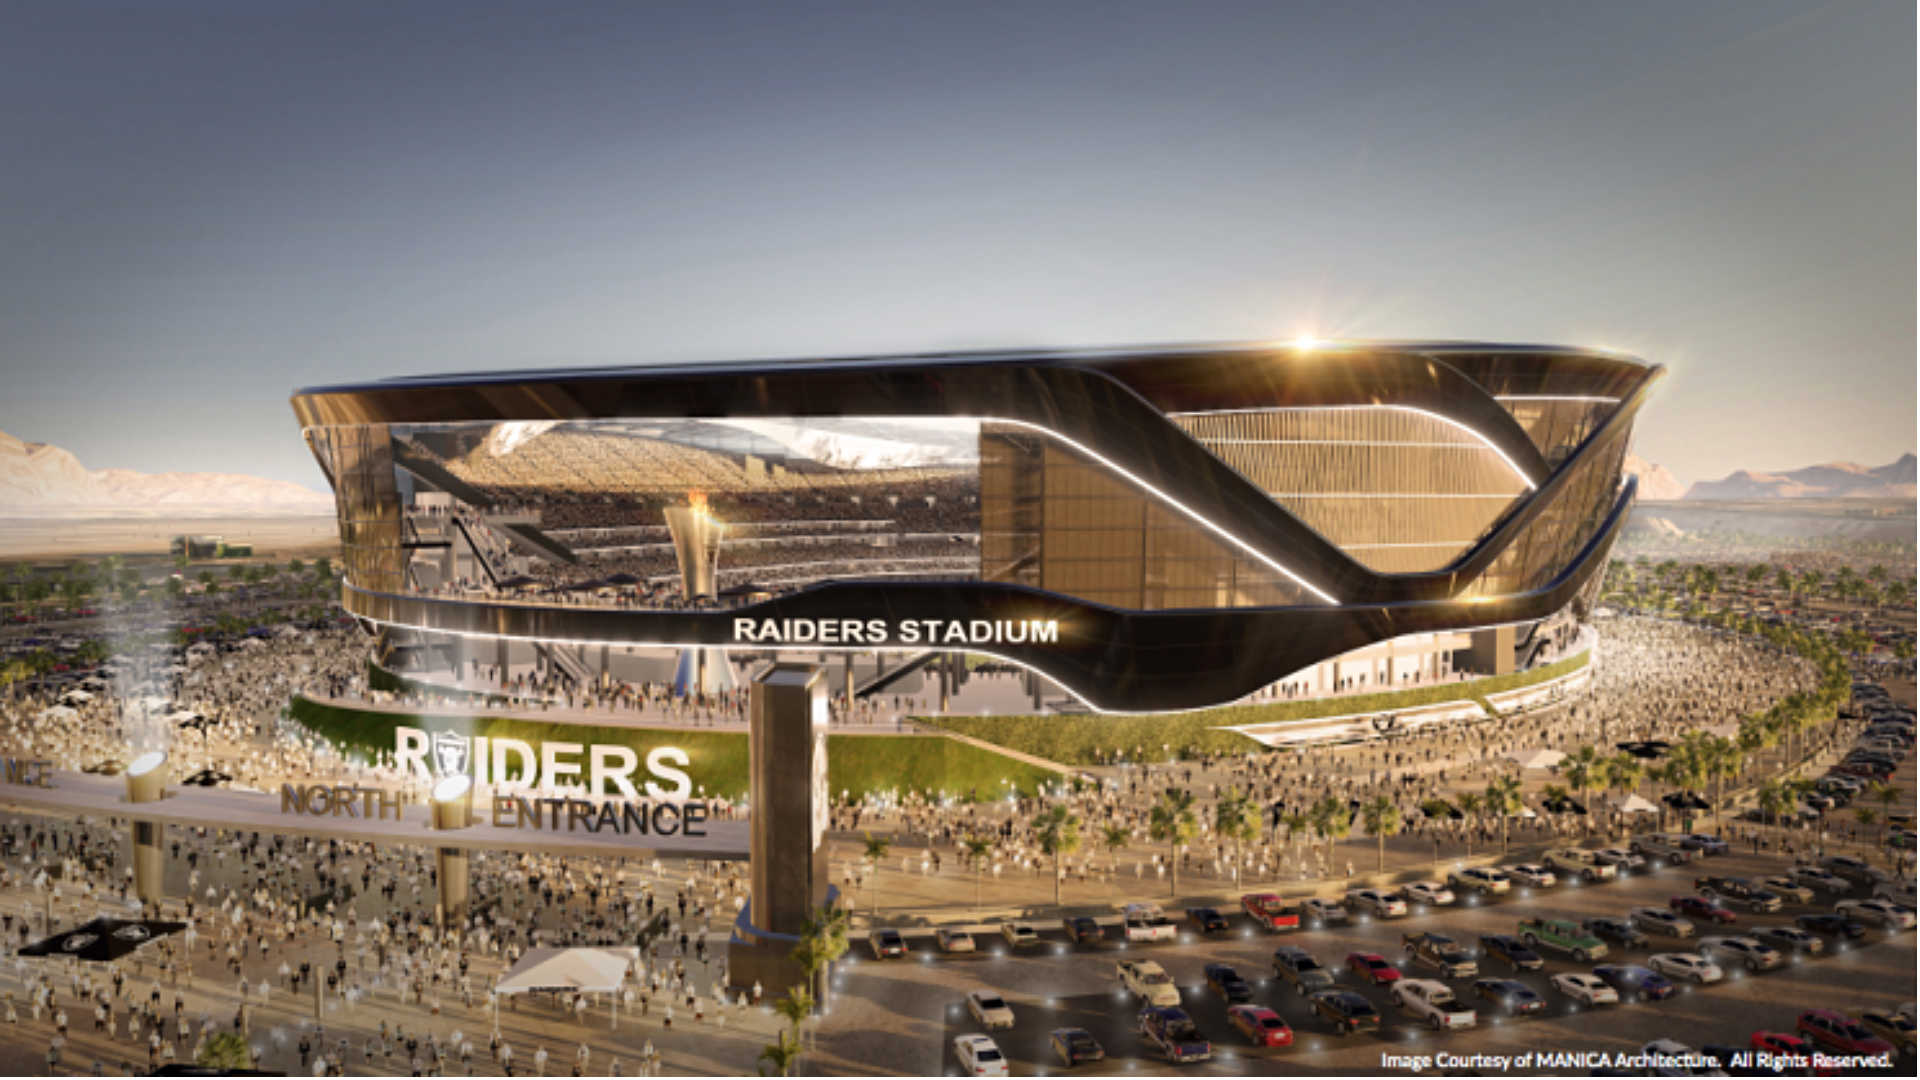 Raiders reportedly will file relocation documents to move to Las Vegas